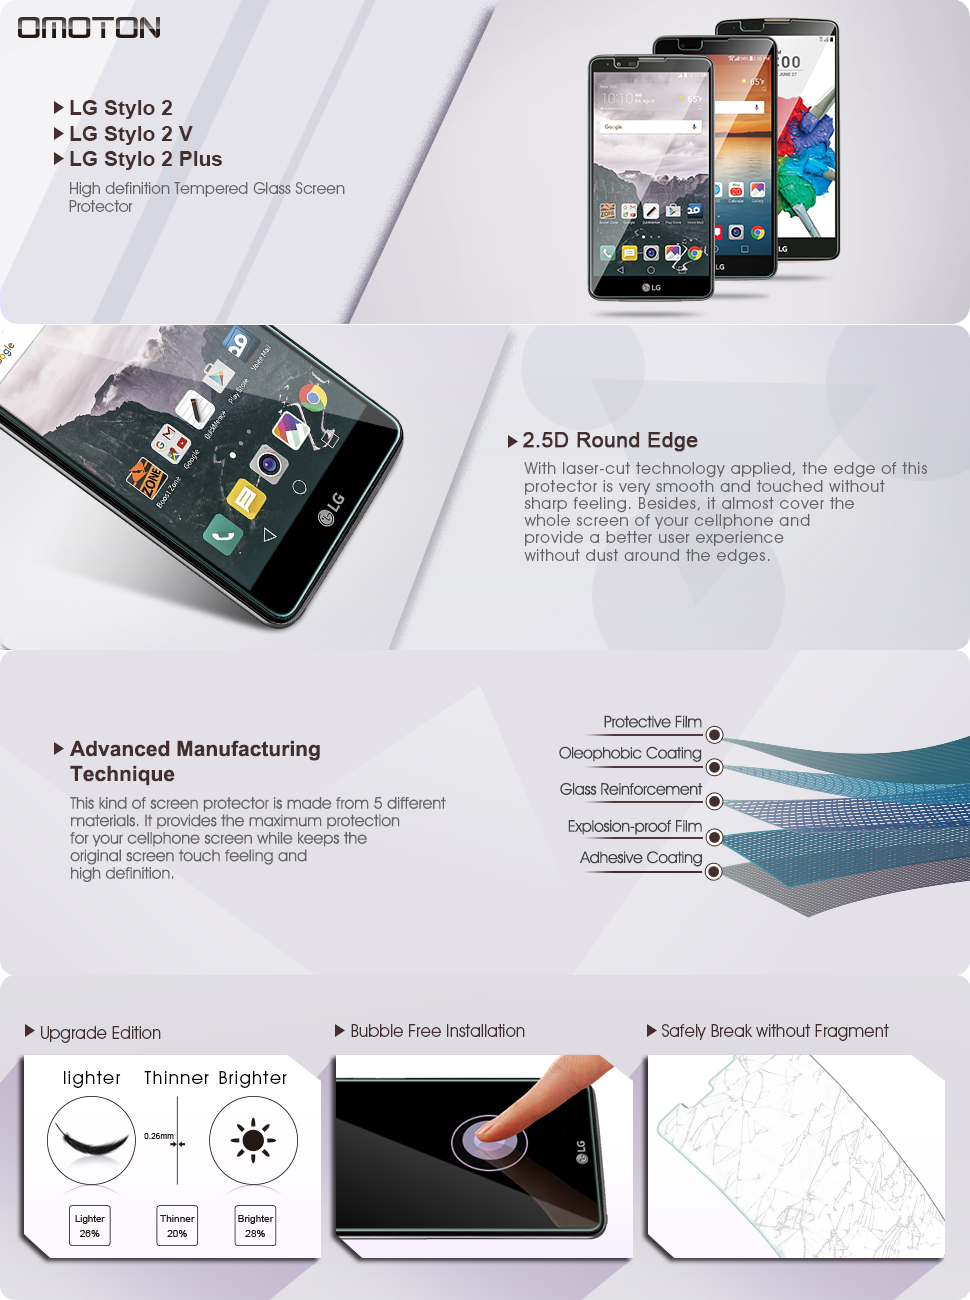 Omoton: High Definition Tempered Glass Screen Protector